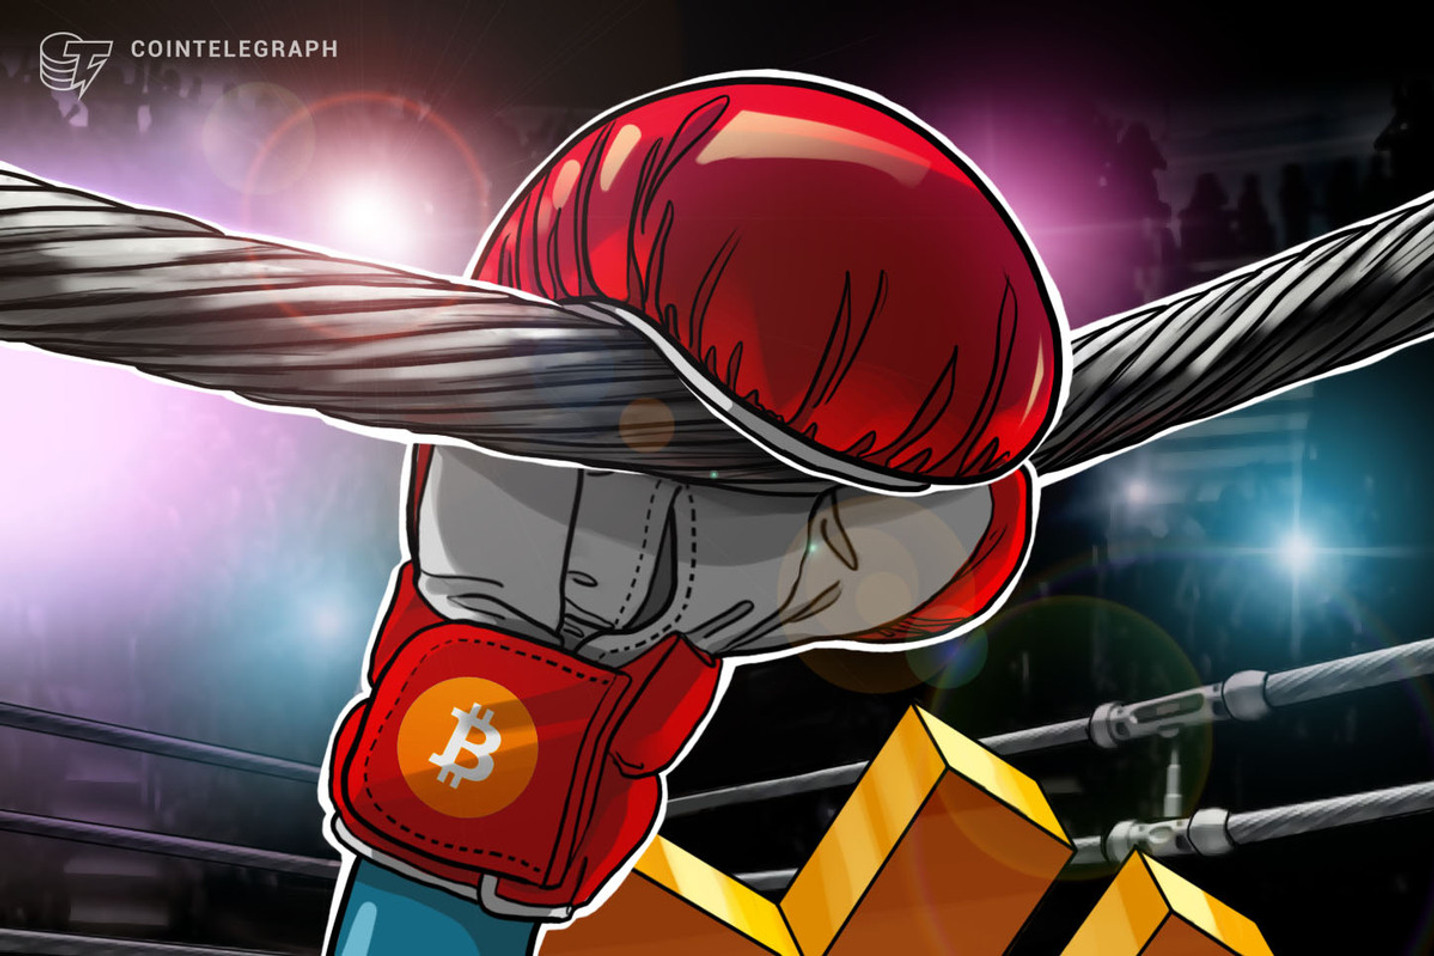 Bitcoin Price Rejected at Key Level Near $9,000